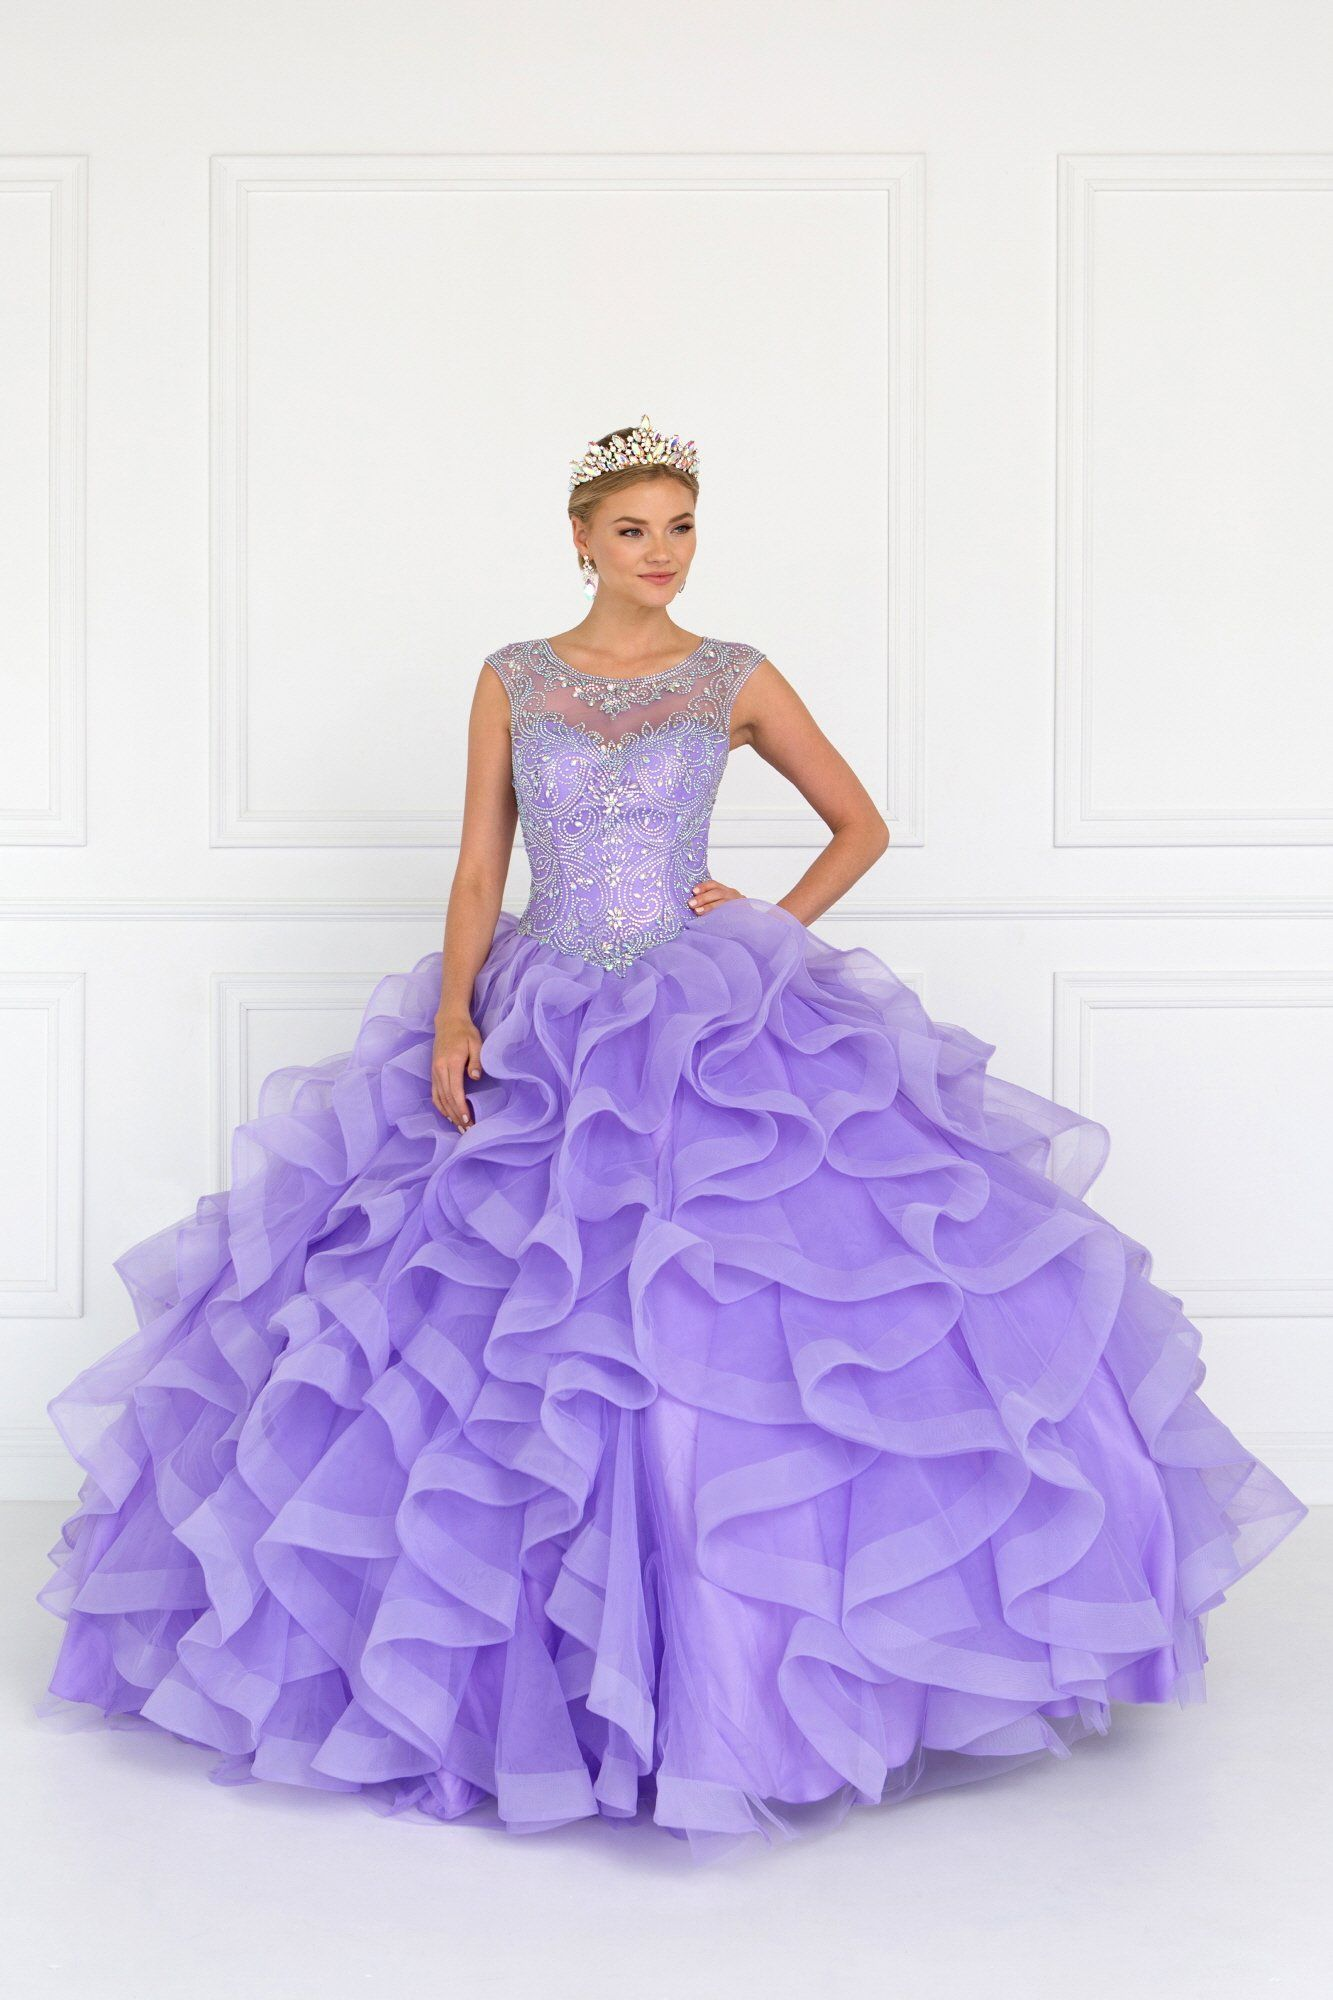 0a20b88483 Be the belle of the ball in a beautiful quinceanera dress with sheer  illusion cap sleeve. A purple quince dress with lace up corset back and  puffy